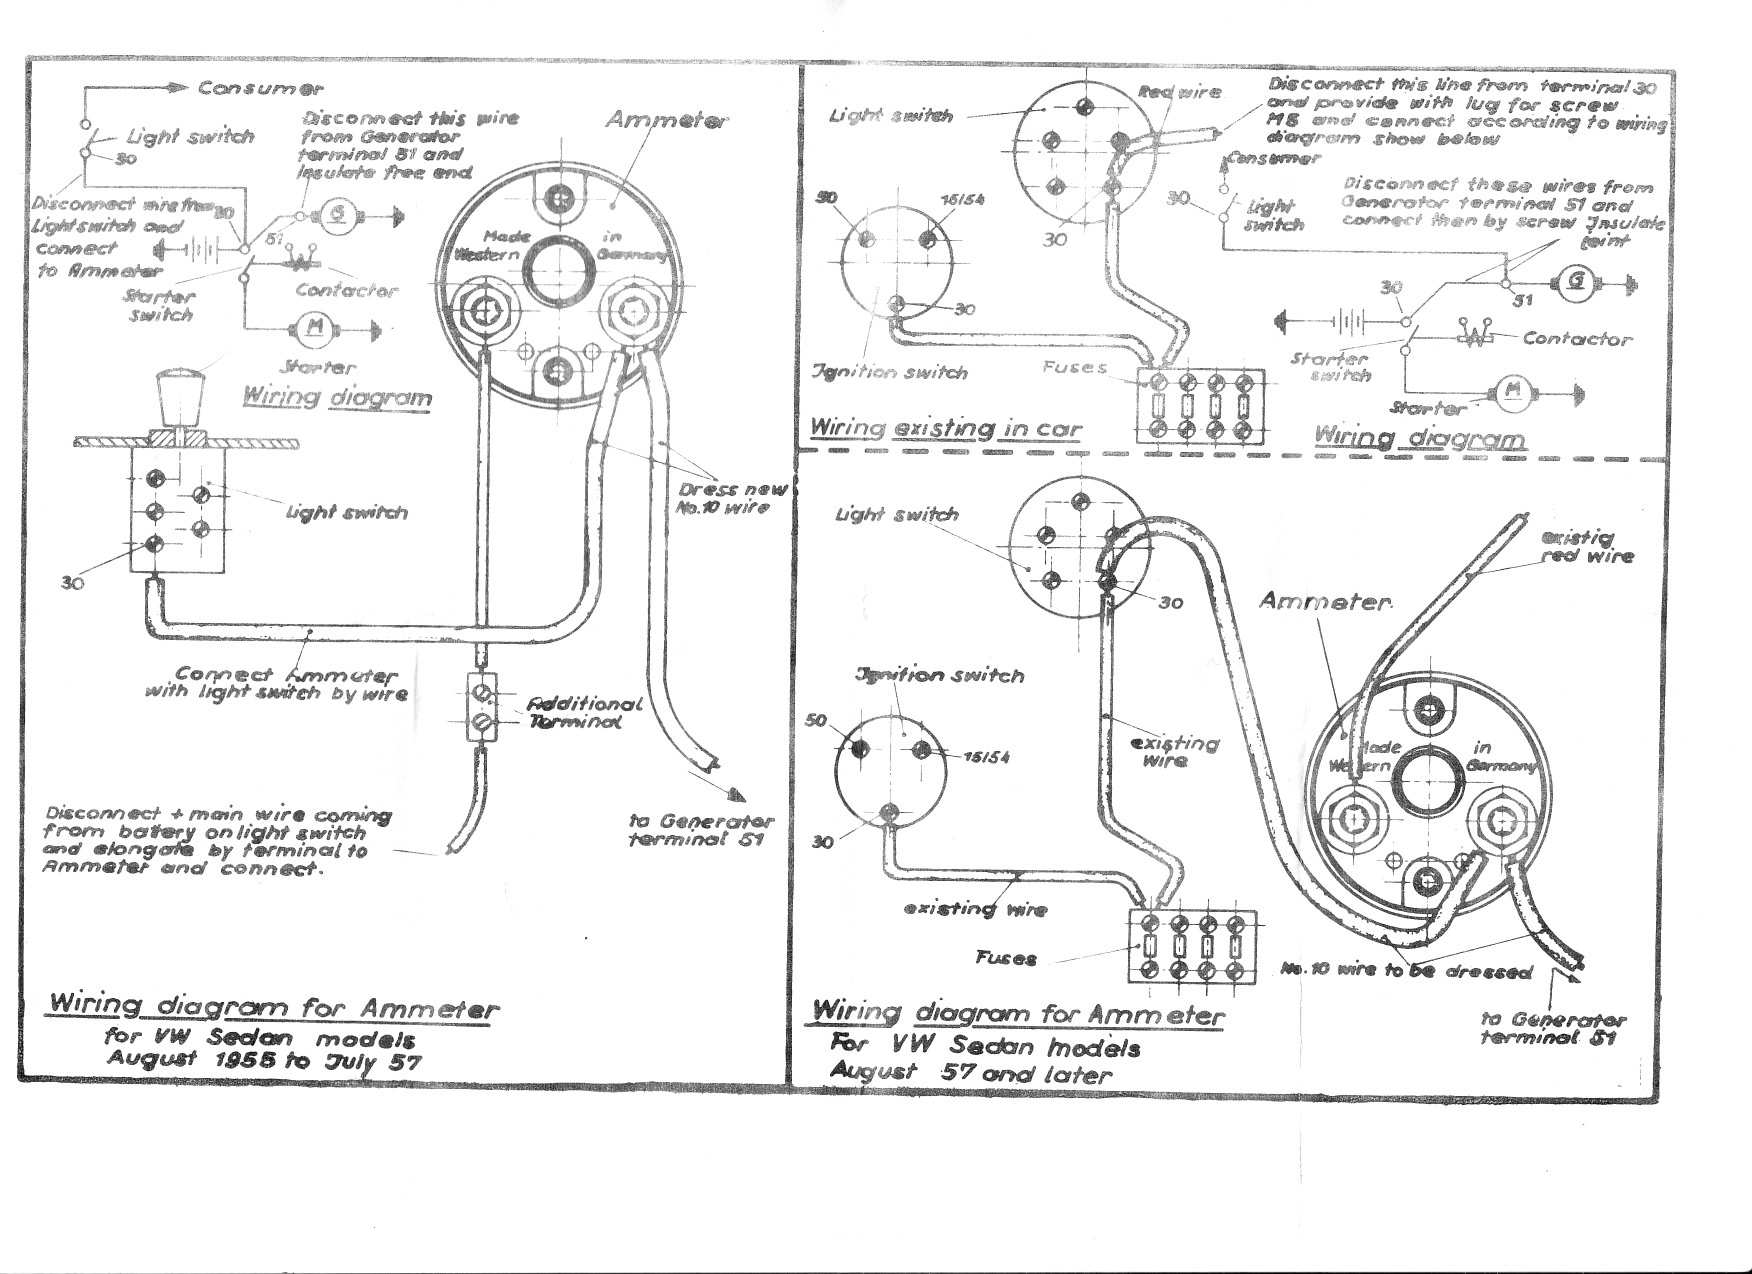 vdo amp gauge wiring diagram electrical circuit digram marine gauge wiring diagram vdo amp gauge wiring schematic diagramauto vdo gauge wiring diagram wiring diagram wiring diagram for 1996